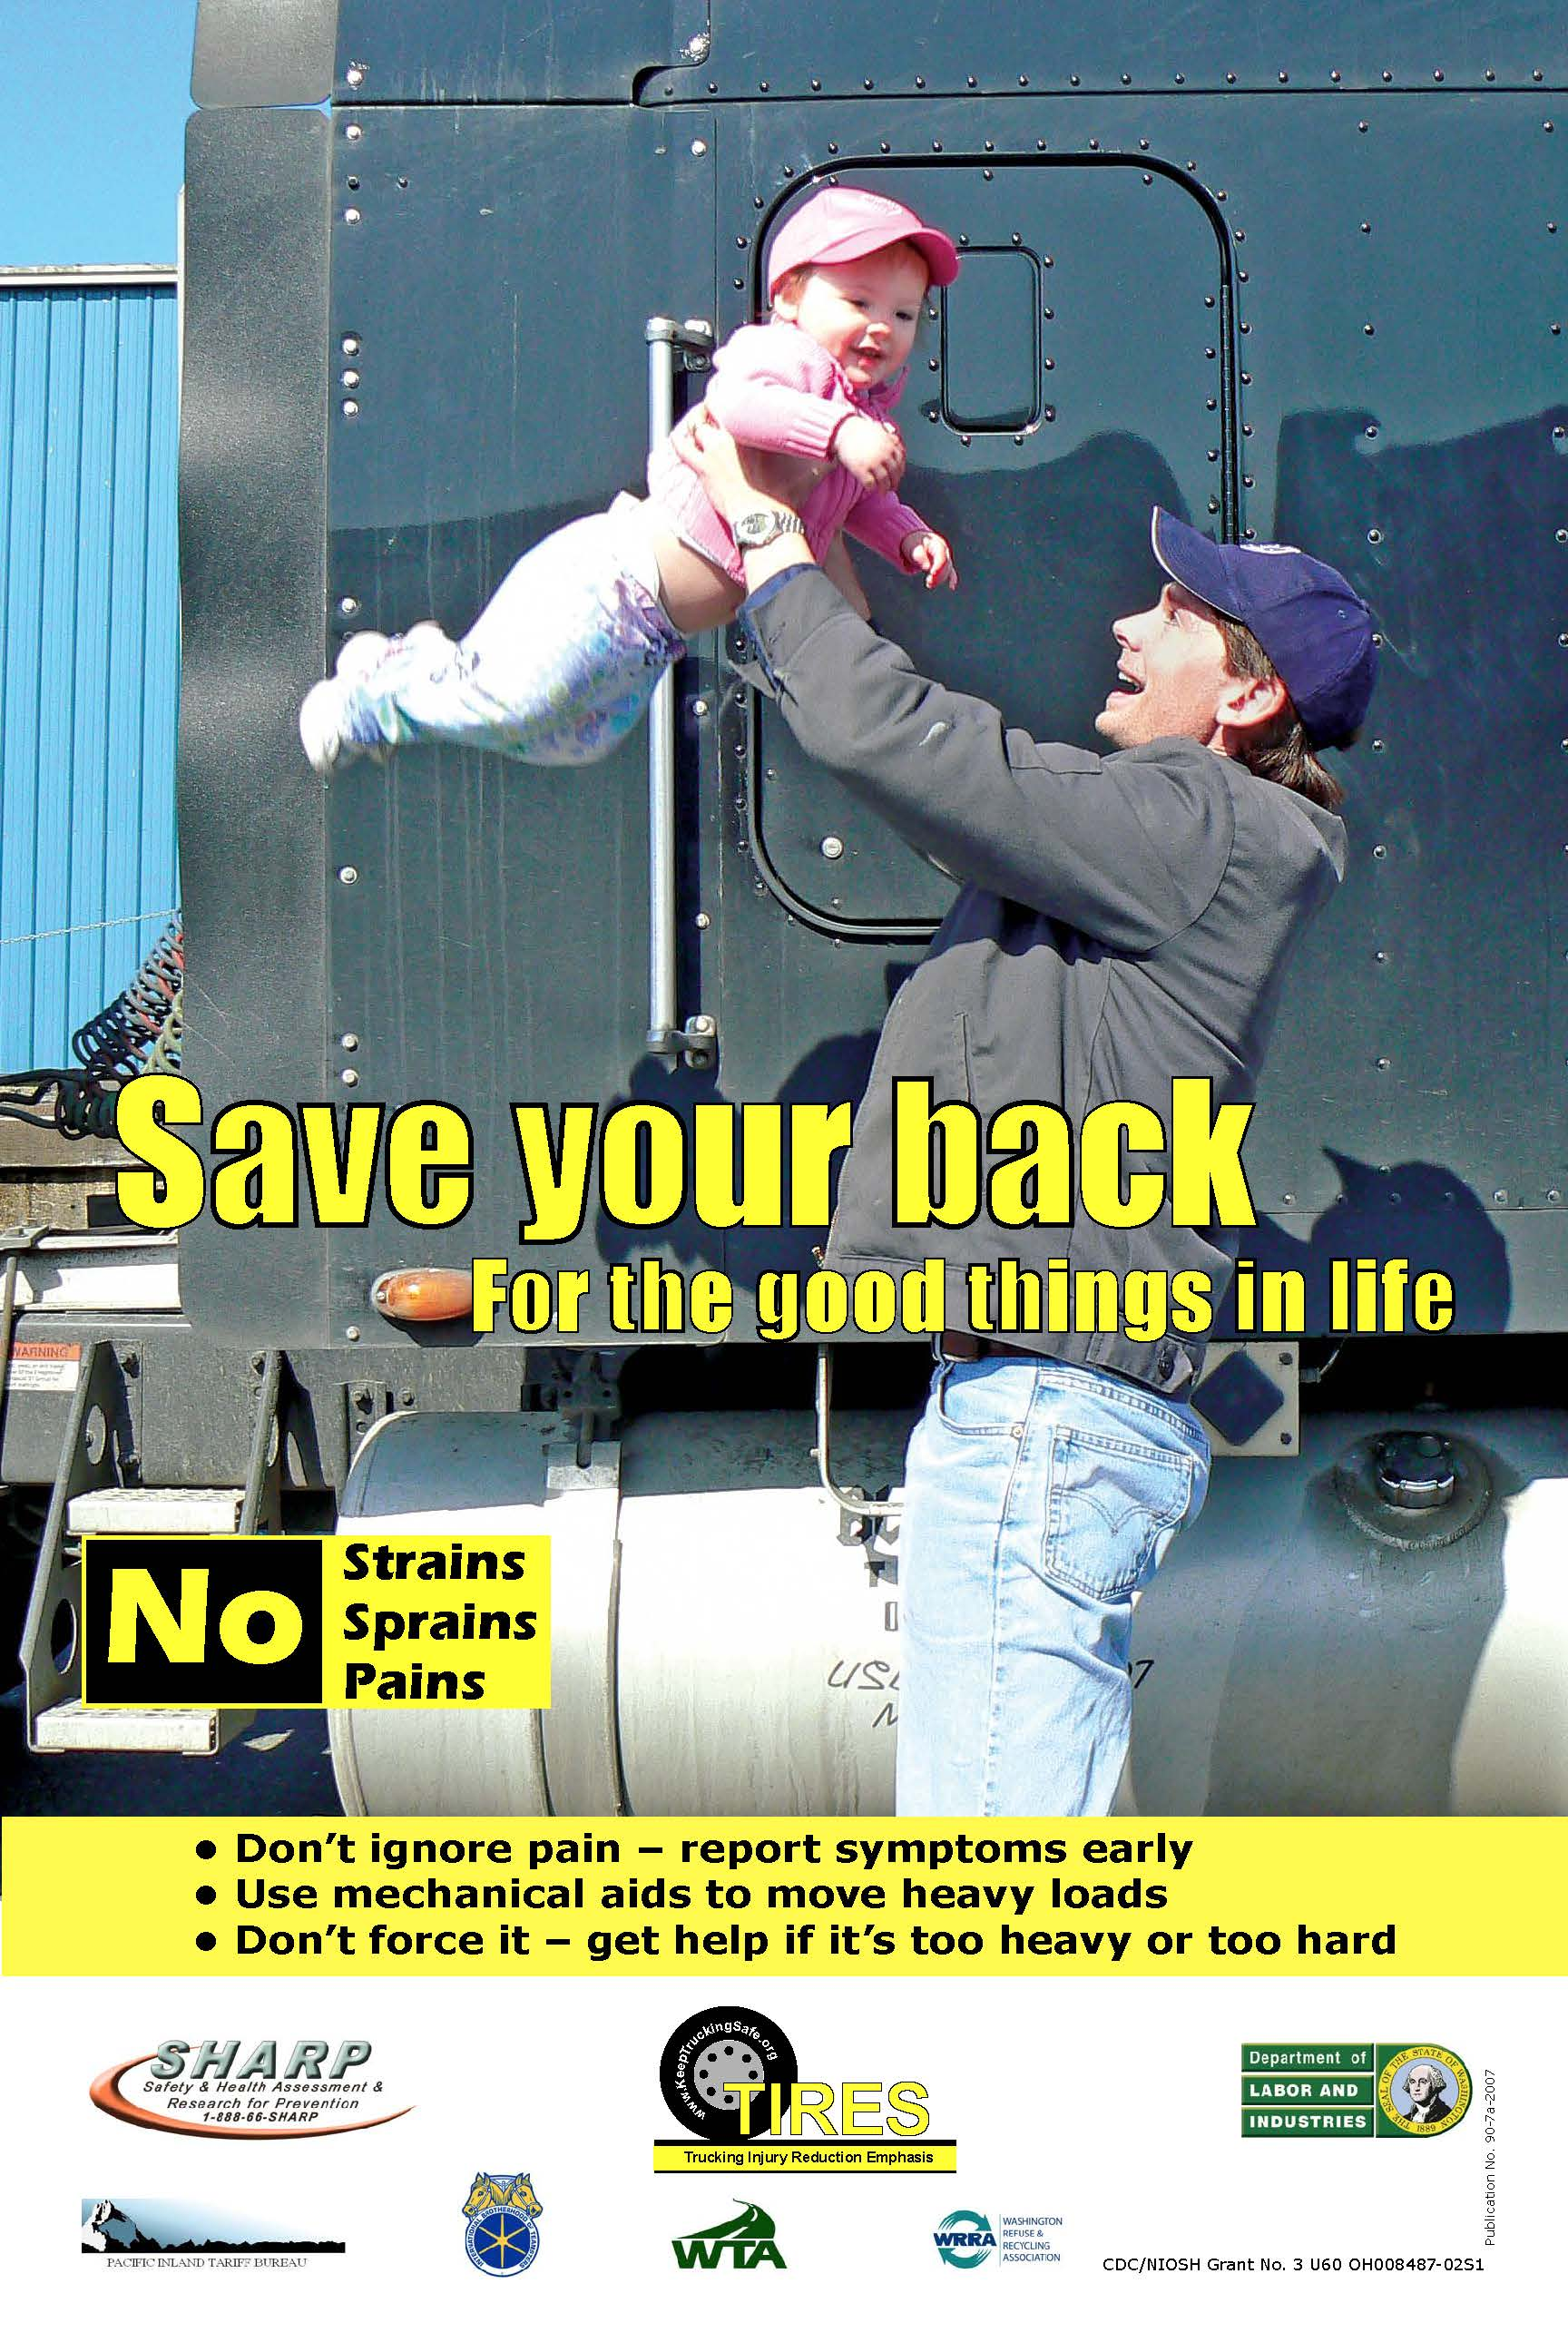 image of a man lifting a baby above his head with a warning about lifting safely to save your back for the good things in life.